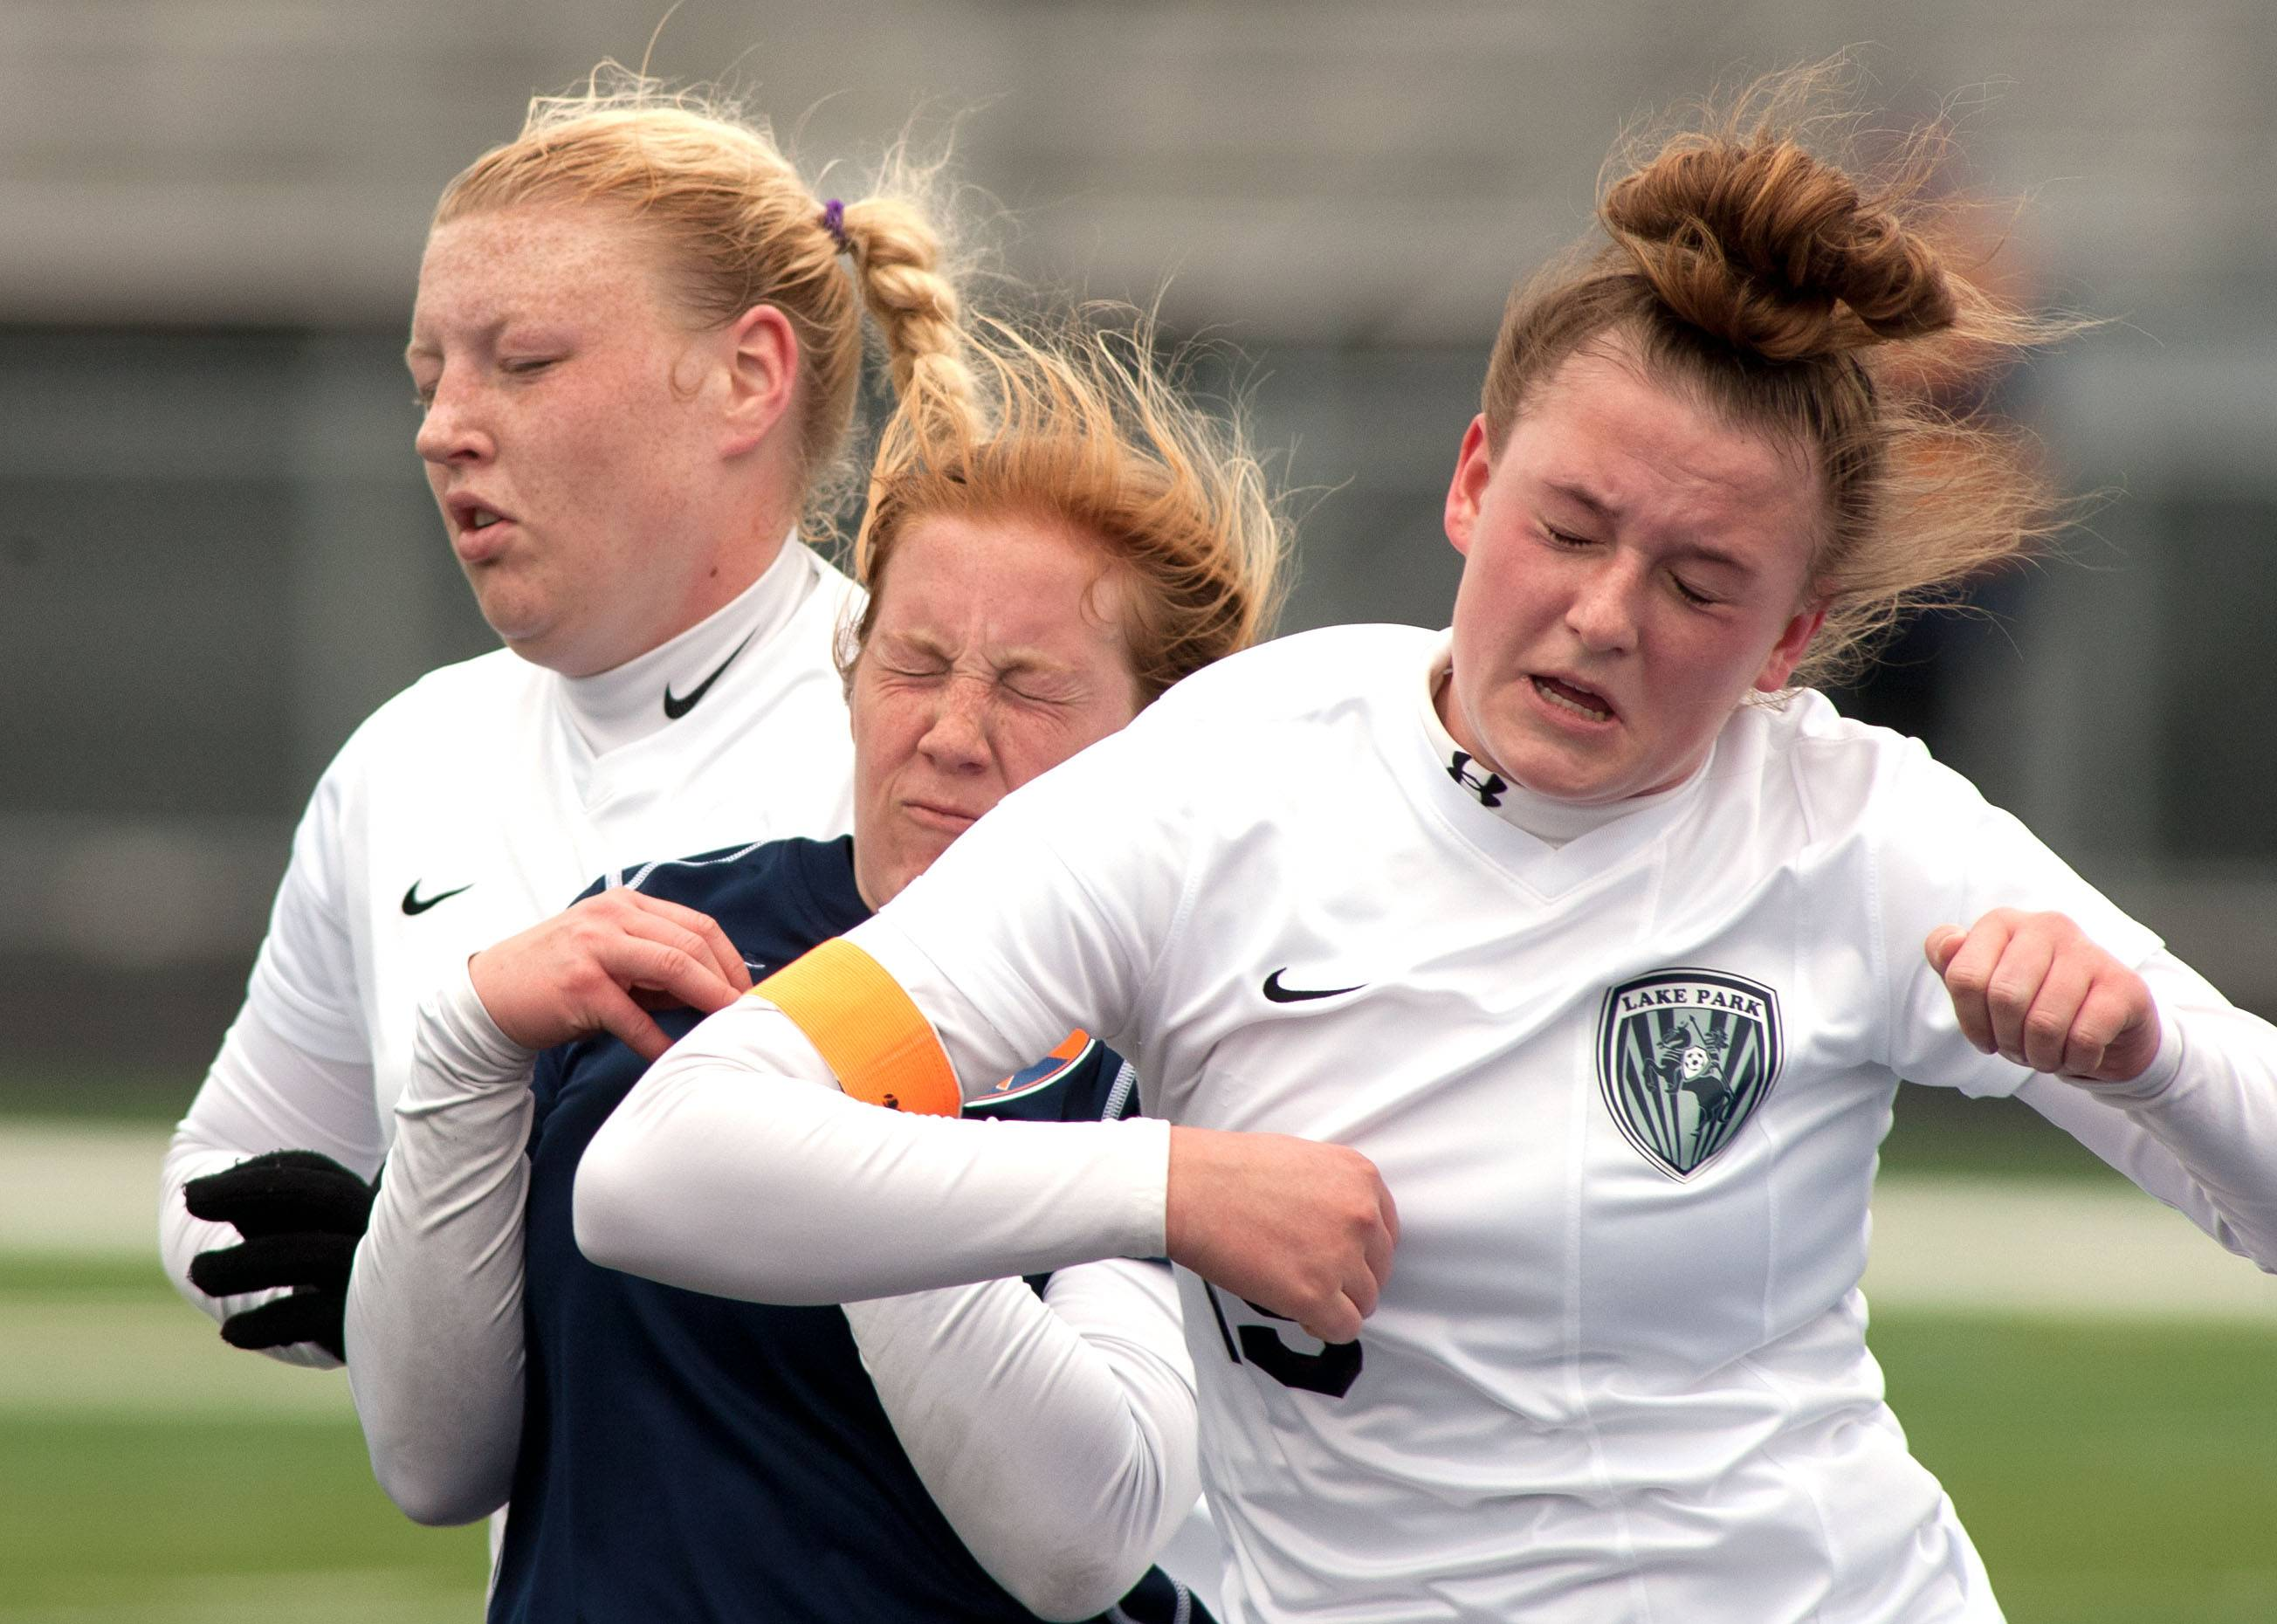 Buffalo Grove's Kelli Zickert, center, battles Lake Park's Casey Harris during girls soccer action in Roselle.